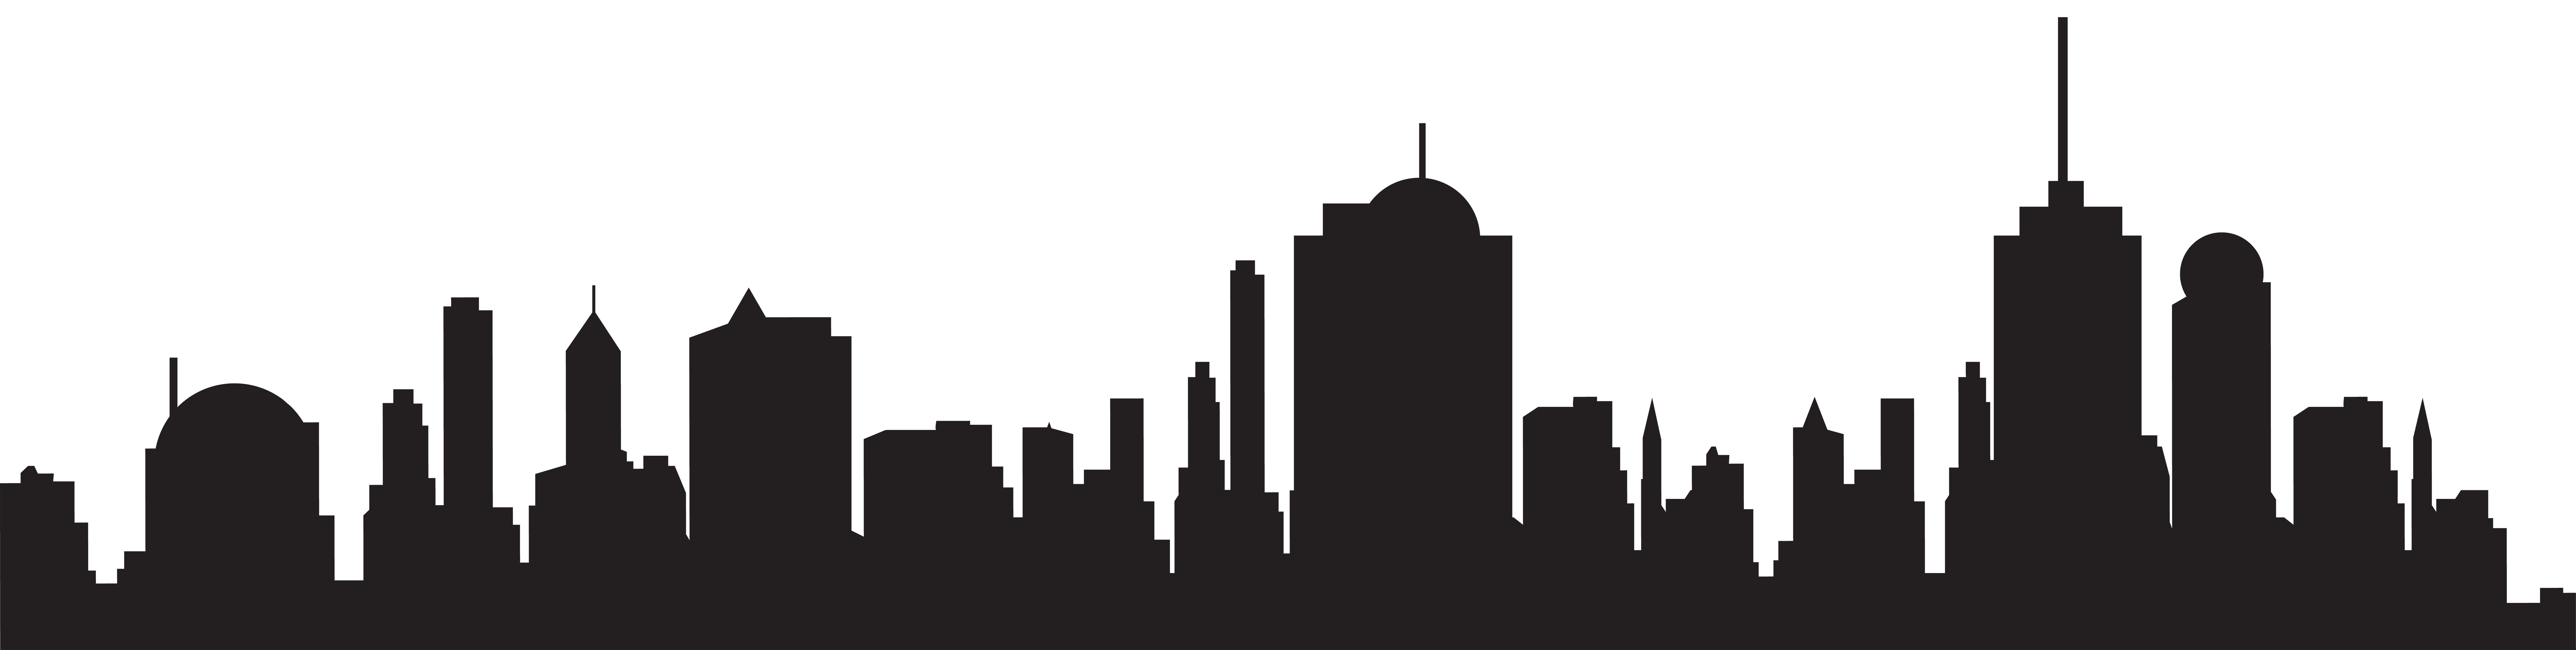 8000x2018 City Silhouette Png Clip Artu200b Gallery Yopriceville